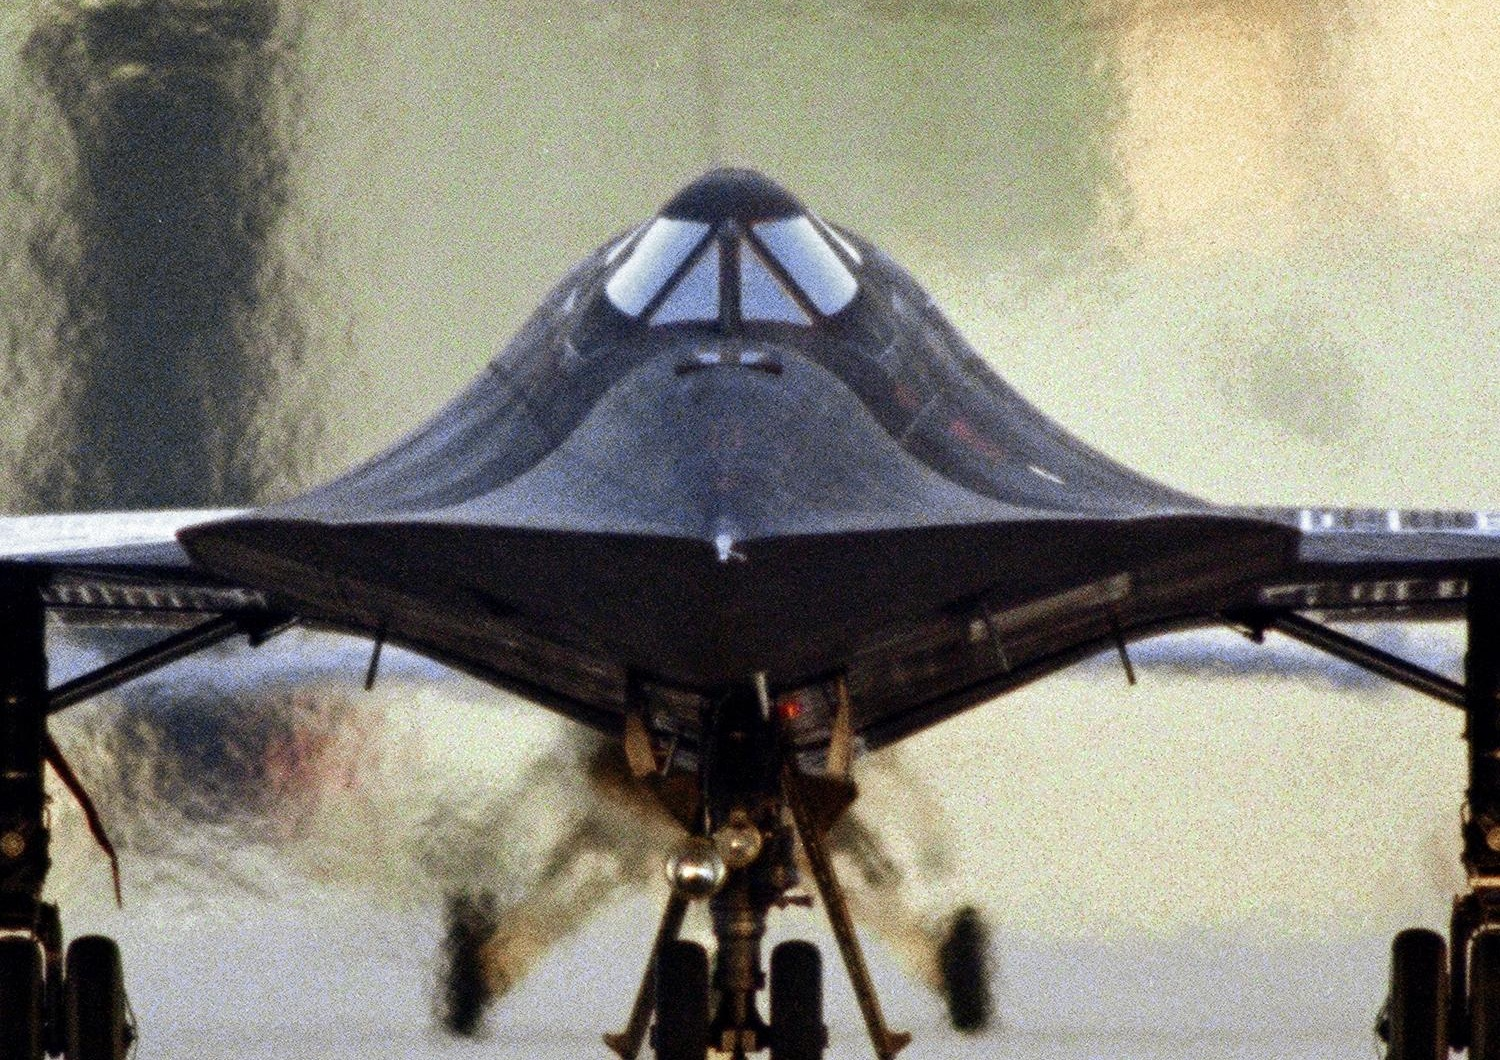 No Bigger Secret: Why the New Mach 5 SR-72 Spy Plane Could Be Everything